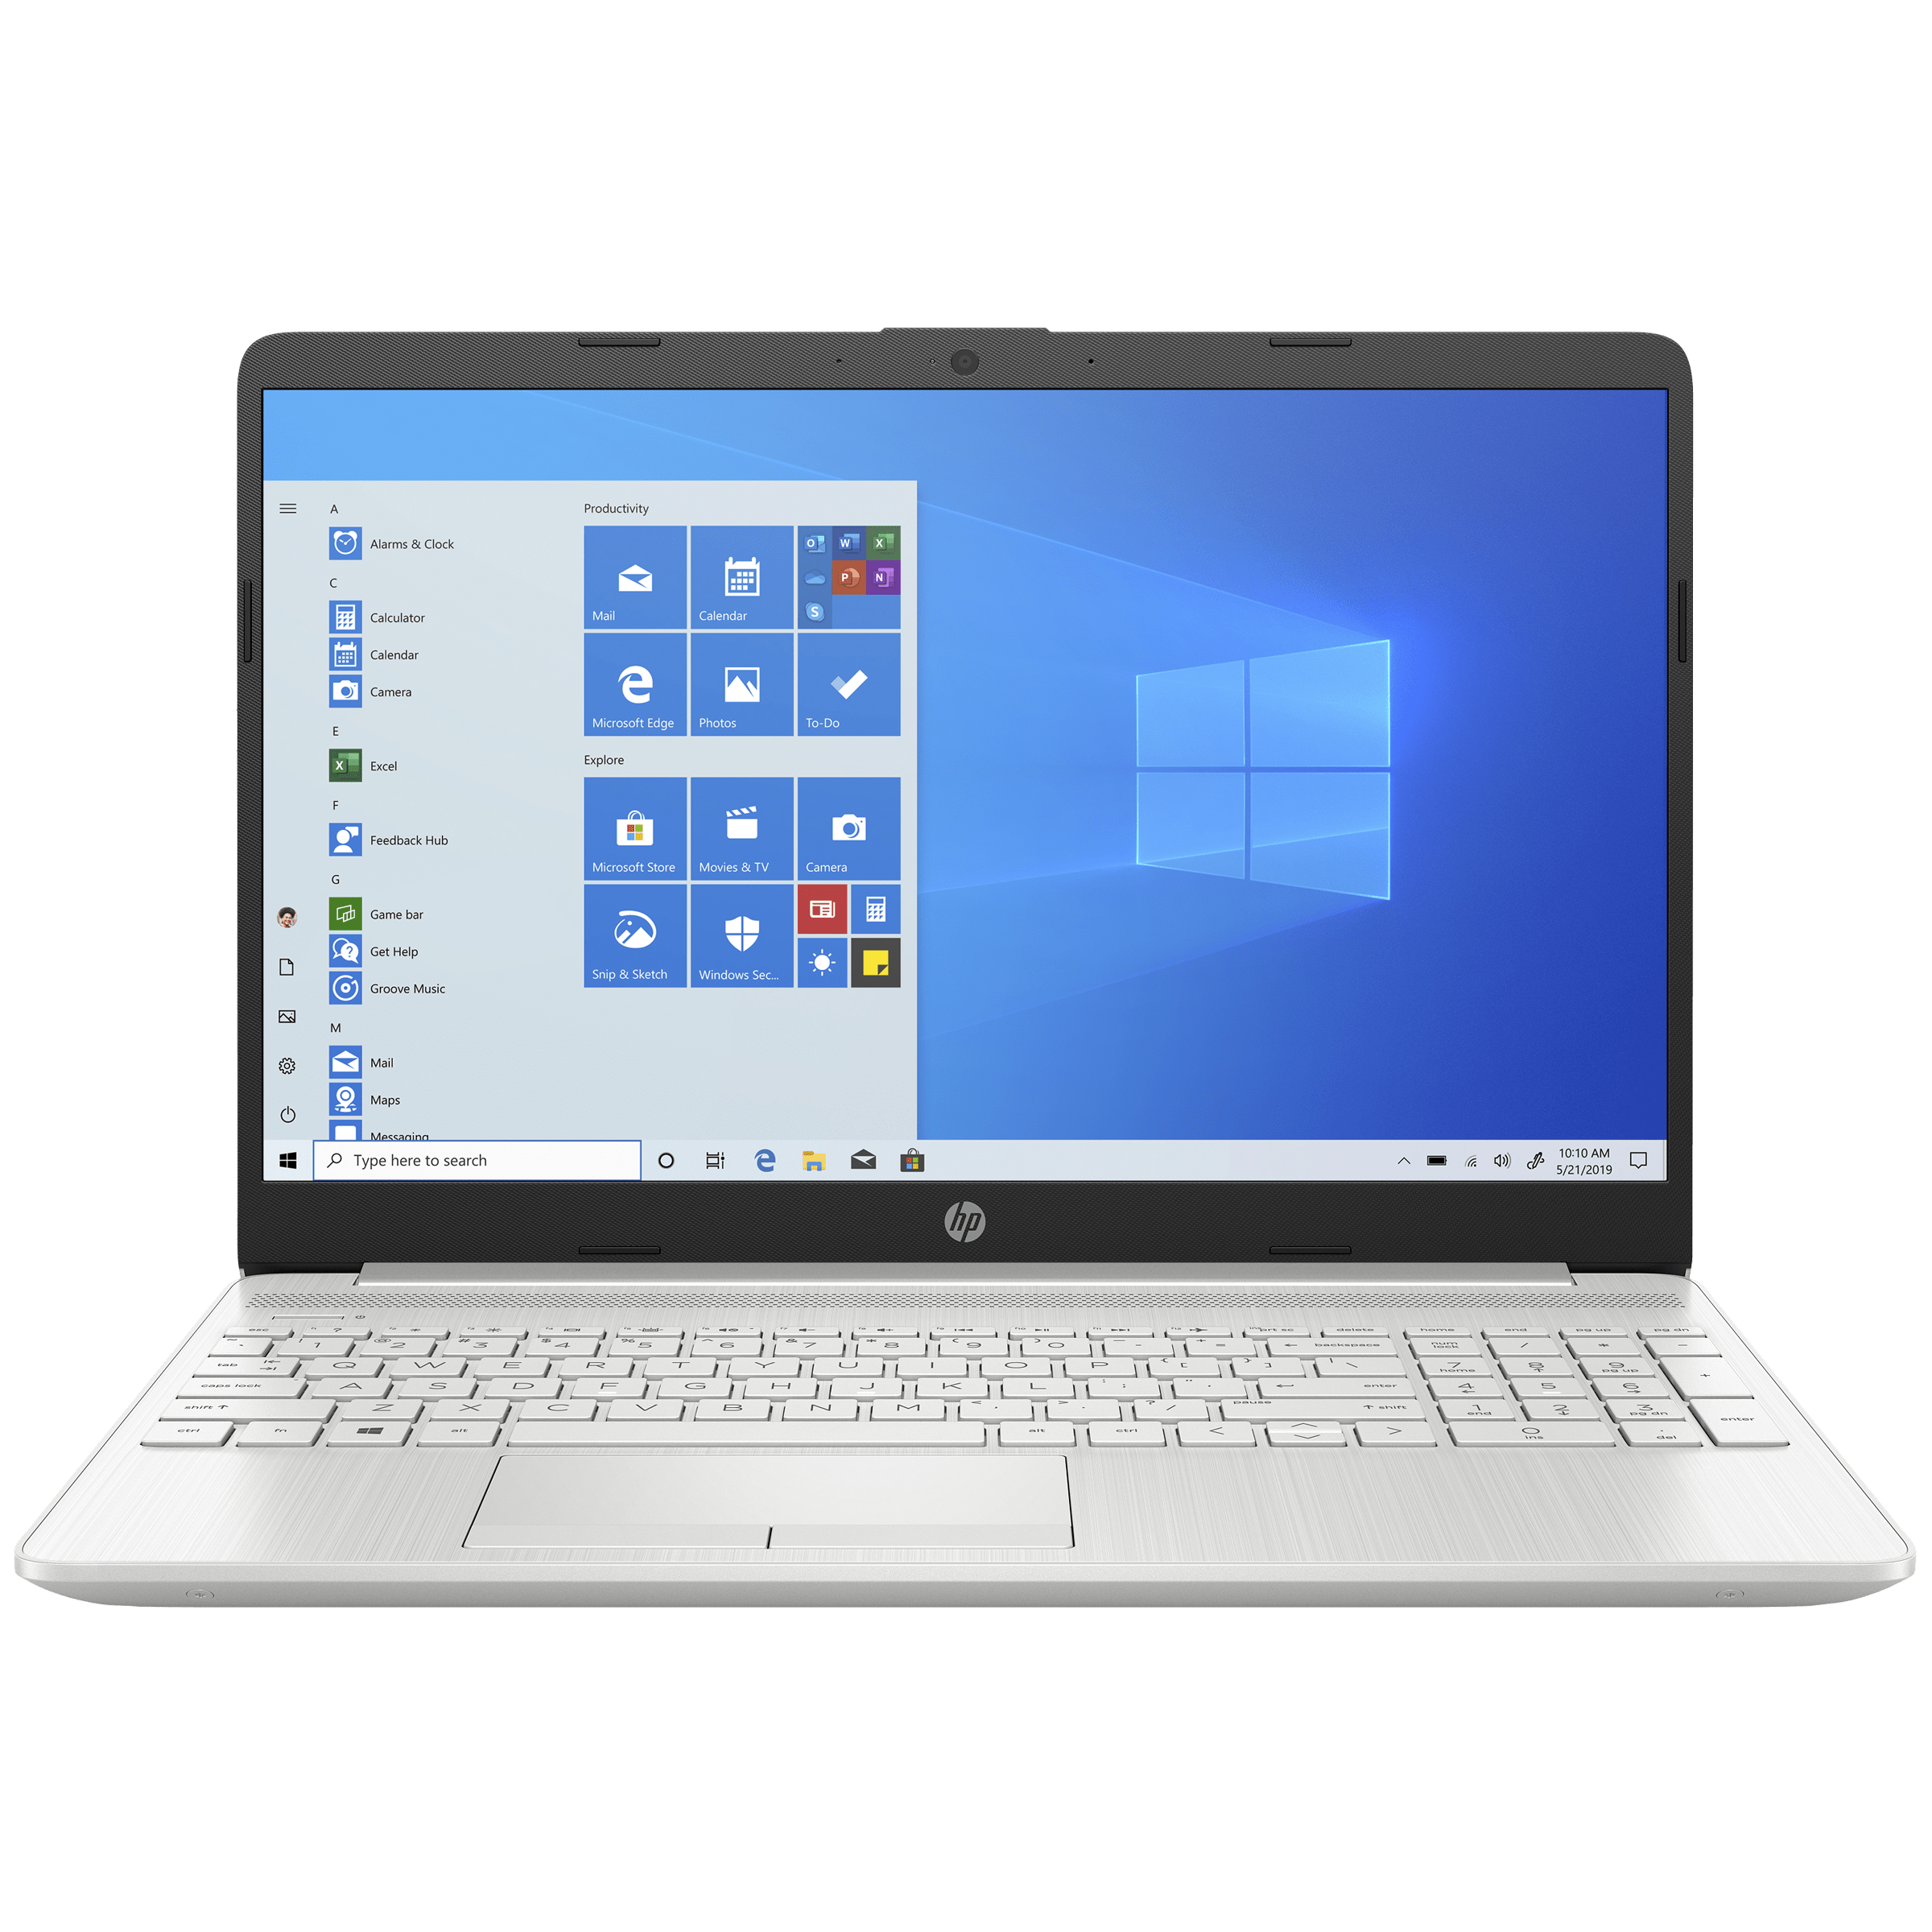 HP 15s-dr3001TU (34W43PA#ACJ) Core i3 11th Gen Windows 10 Home Thin and Light Laptop (8GB RAM, 1TB HDD, Intel UHD Graphics, 39.6cm, Natural Silver)